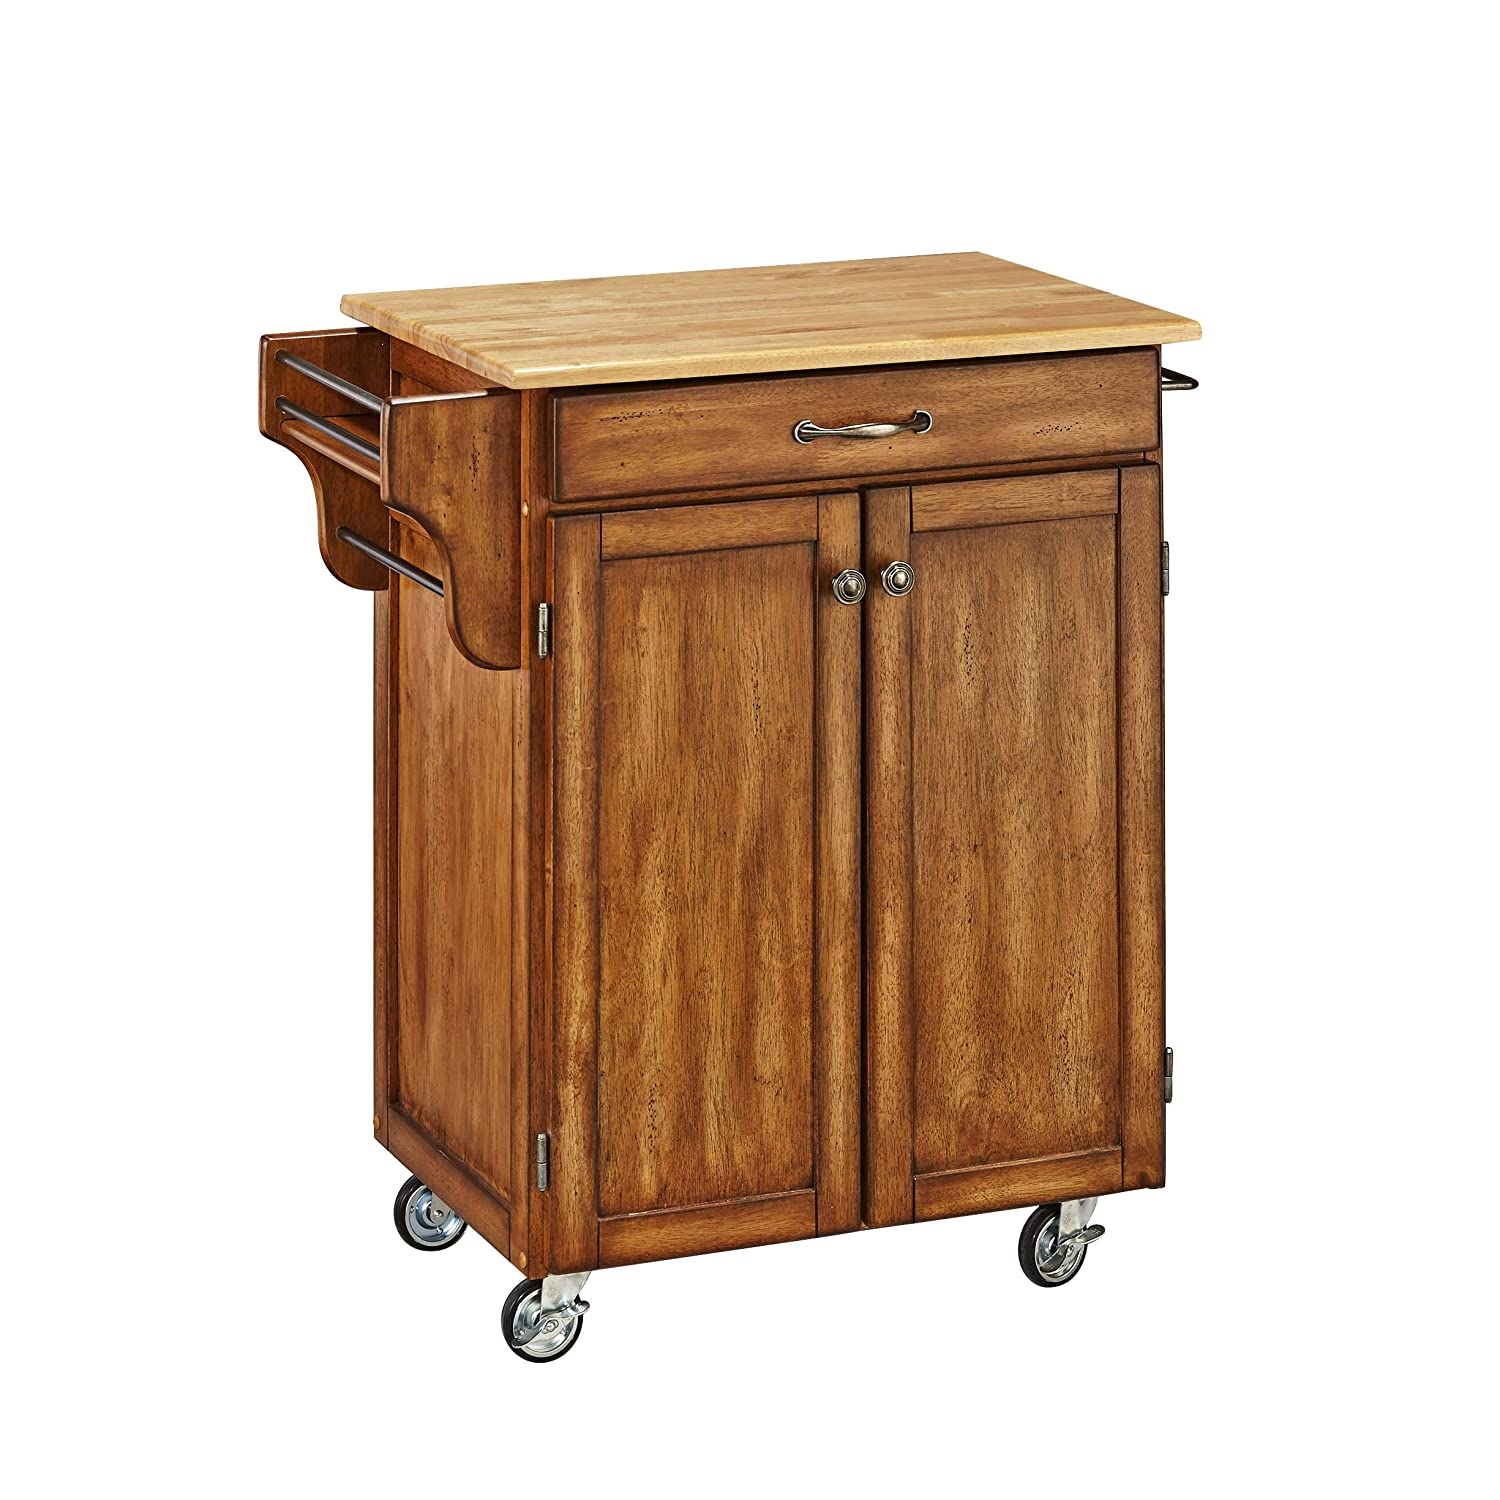 Create-a-Cart Black 2 Door Cabinet Kitchen Cart with Black Granite Top by Home Styles